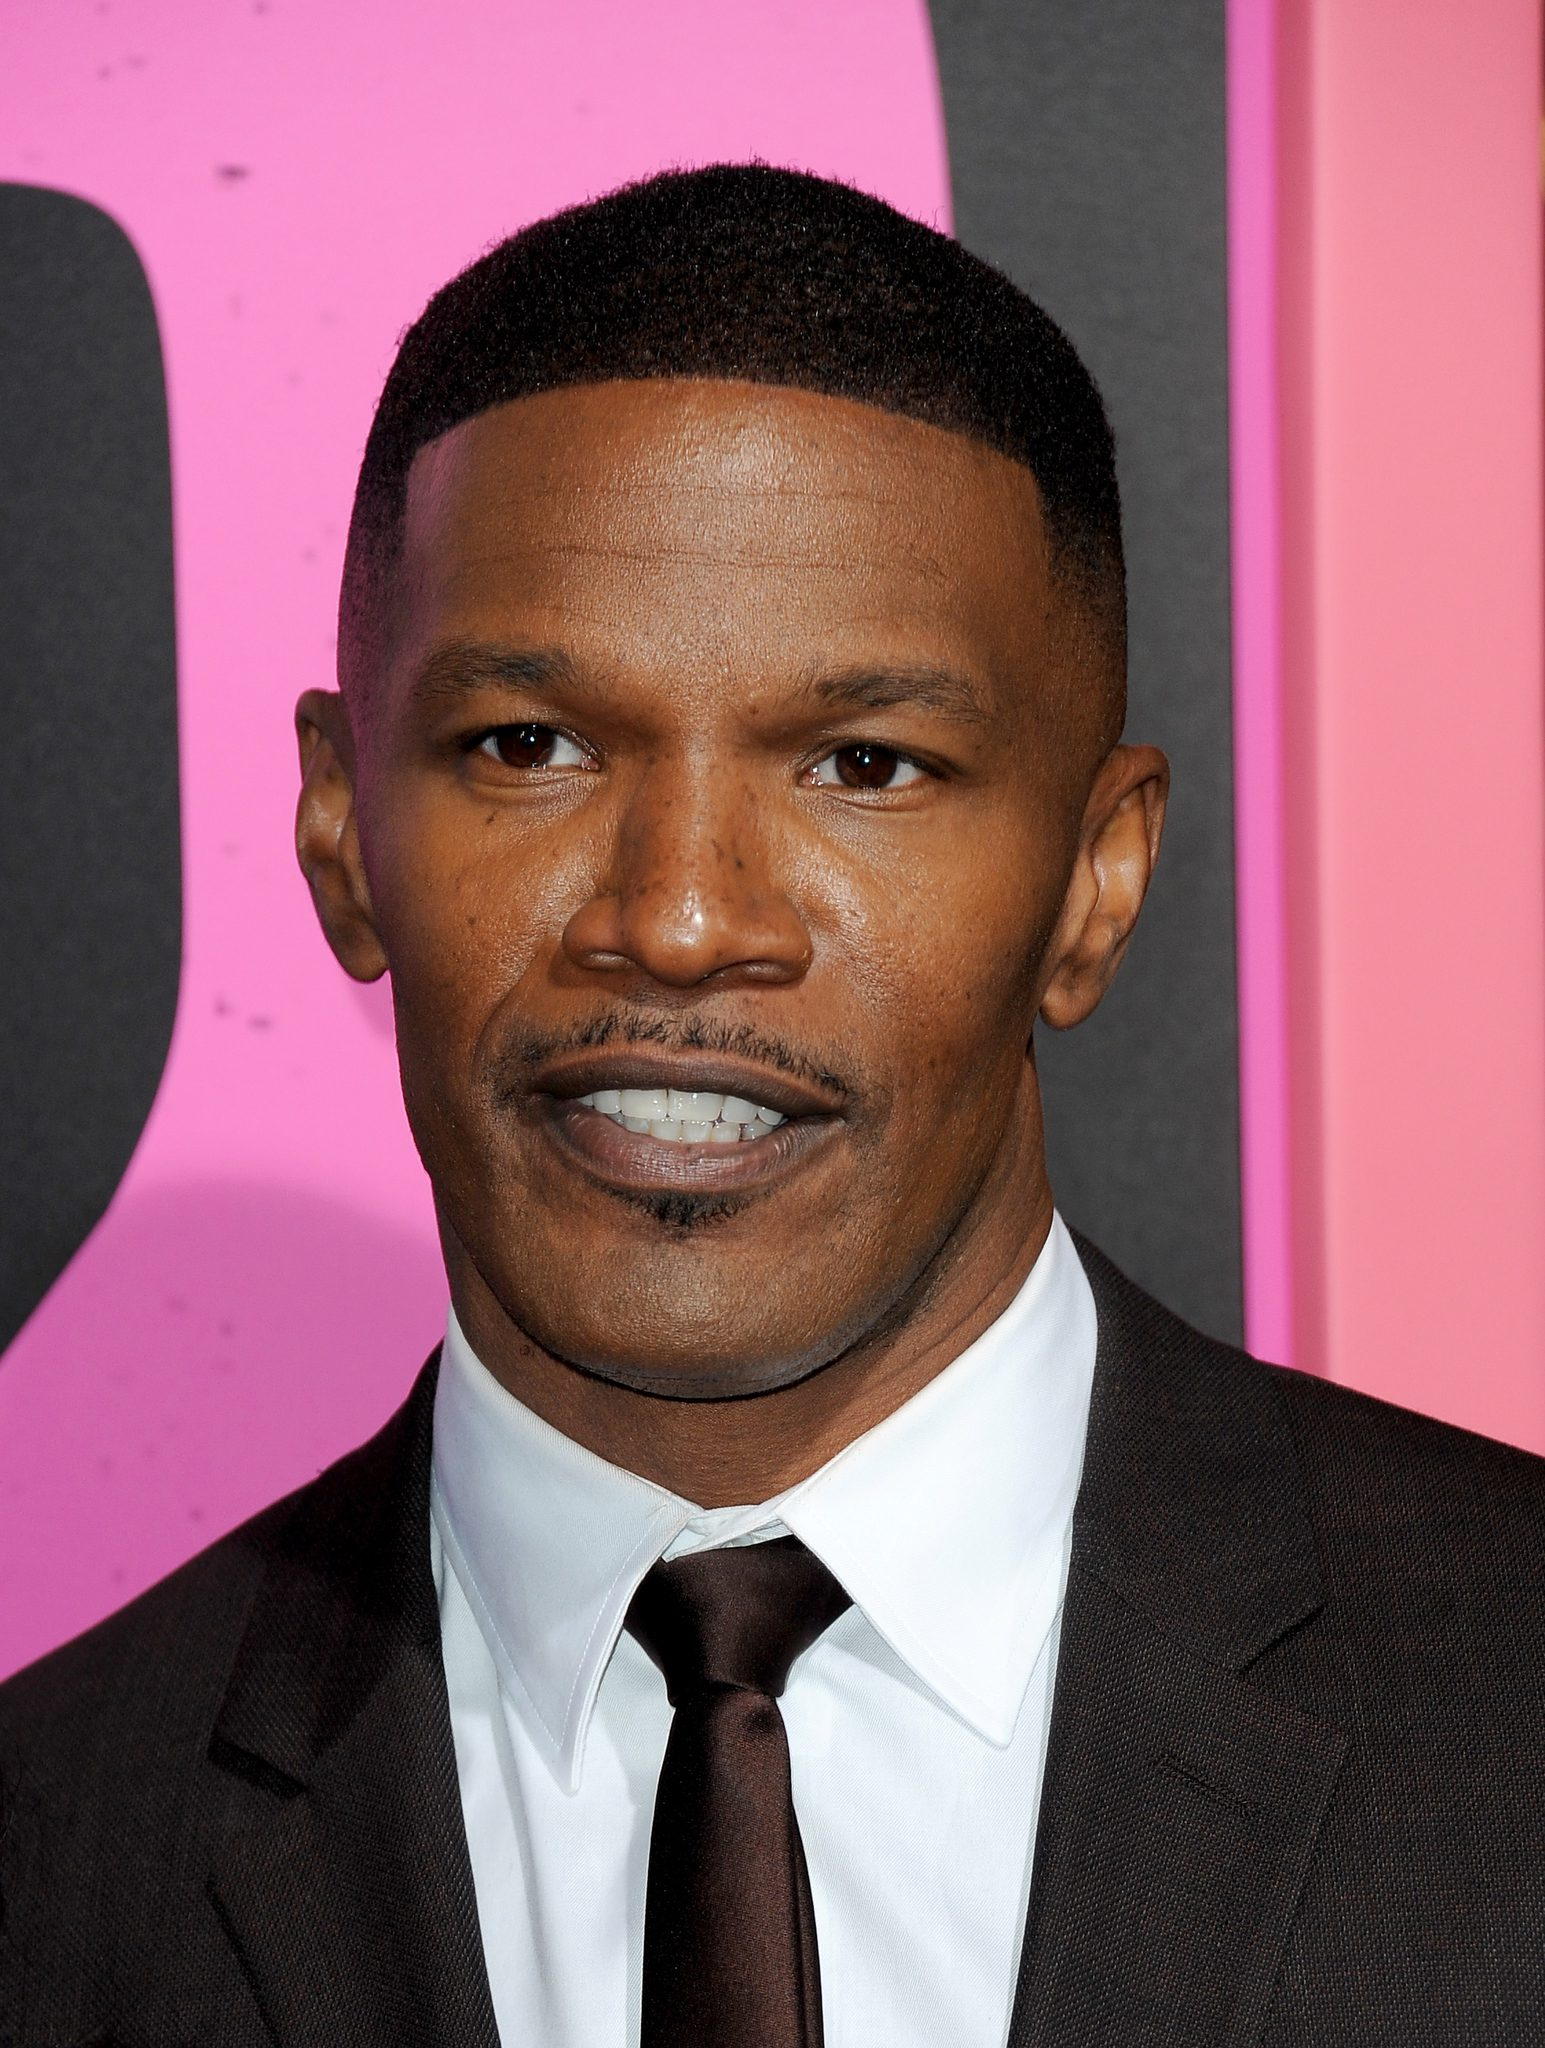 What is Jamie Foxx Real Name? A Surprise For Real Fans